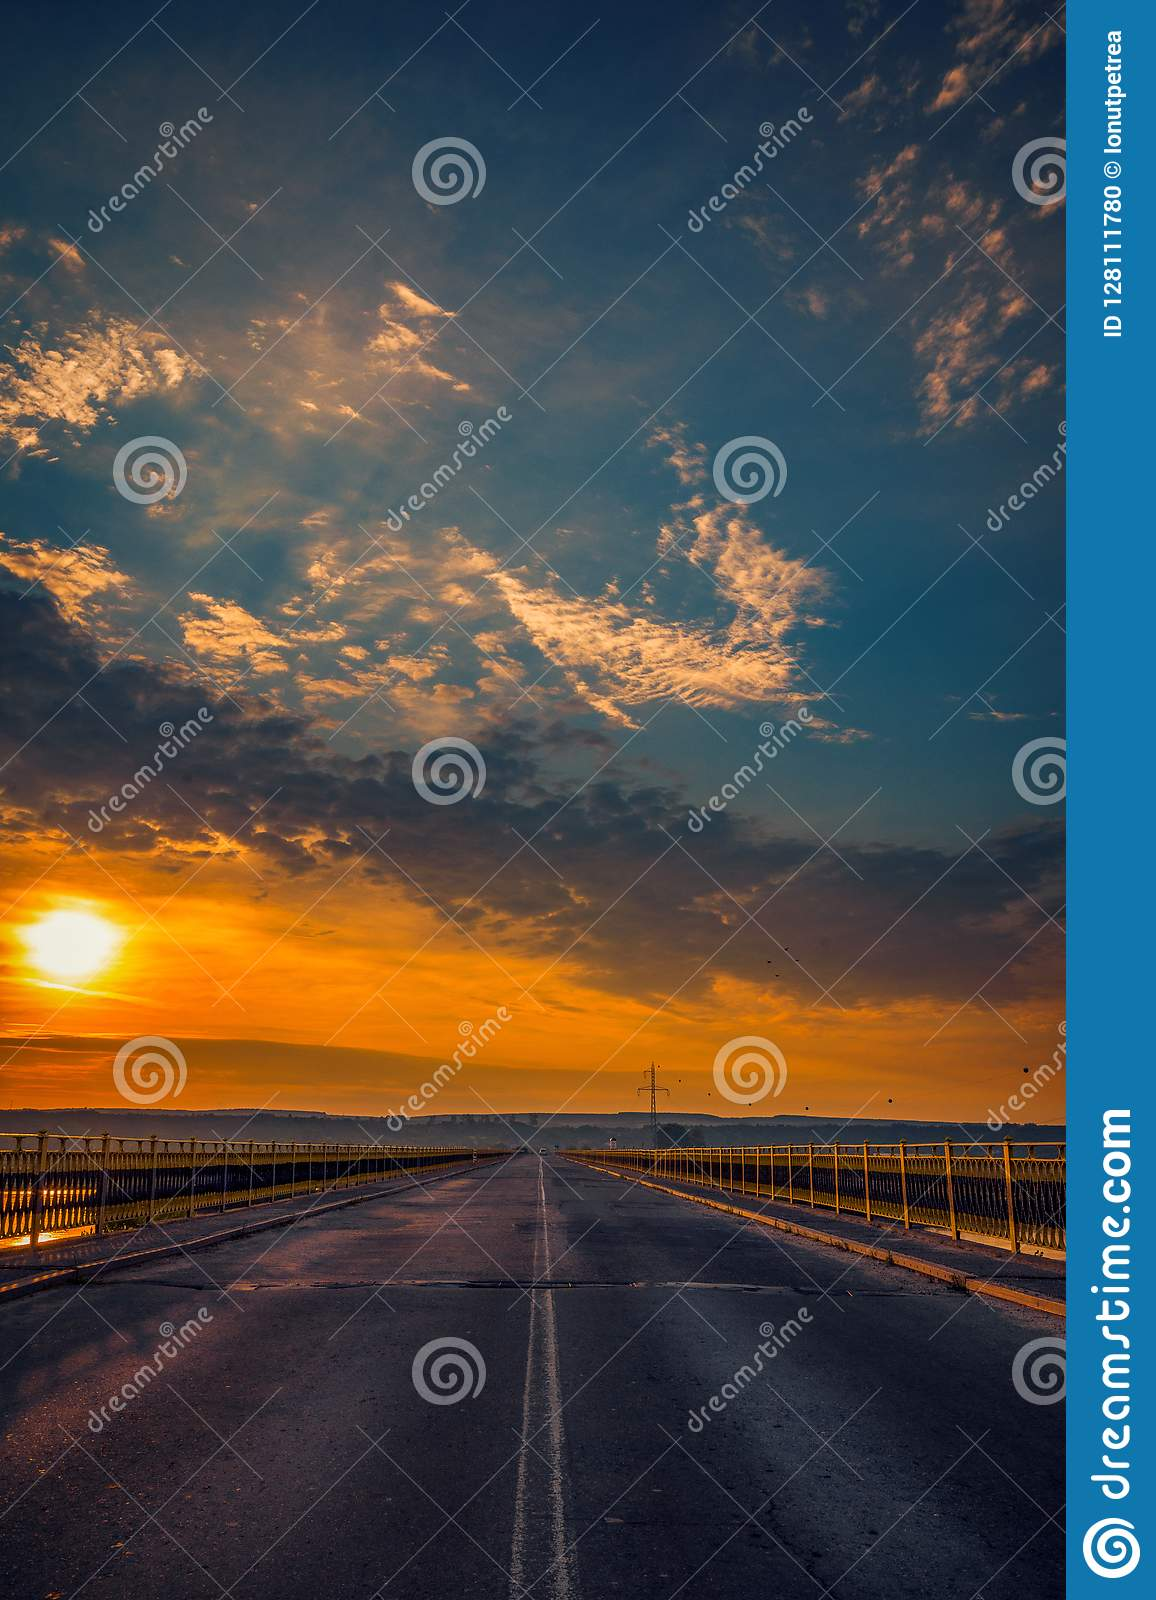 Road bridge over a river at sunrise against a blue sky with clouds